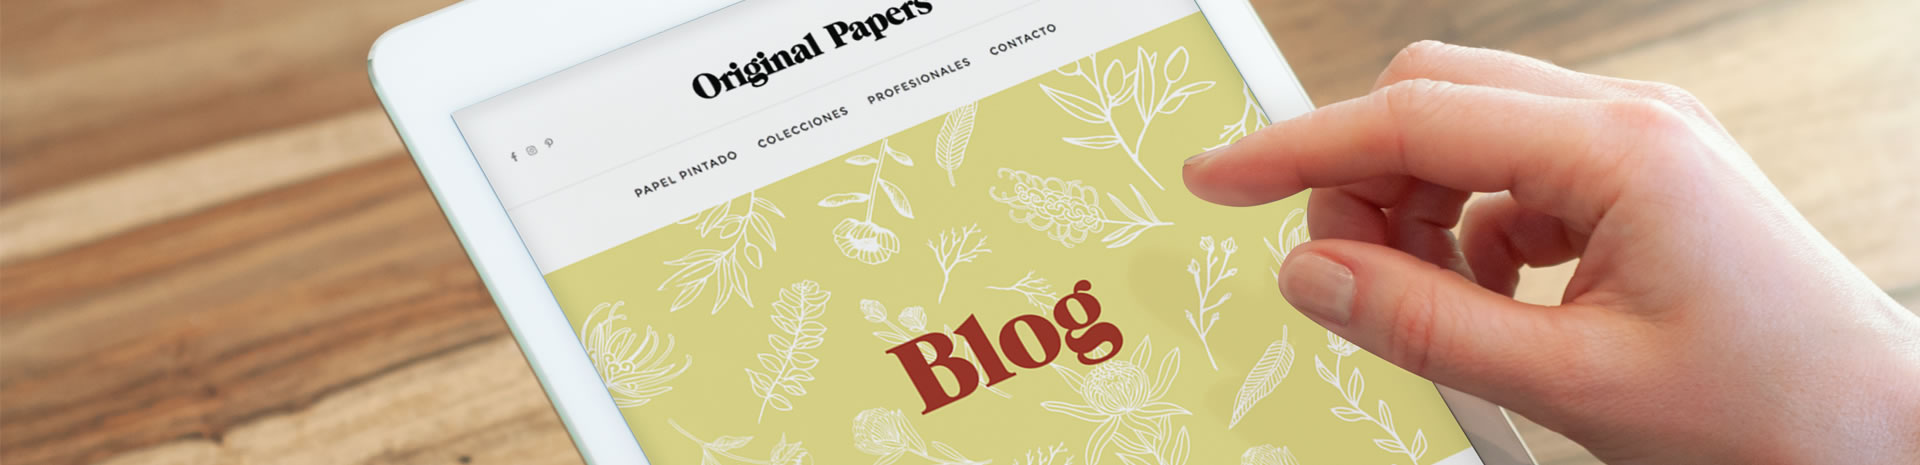 Enlace al blog de Original Papers